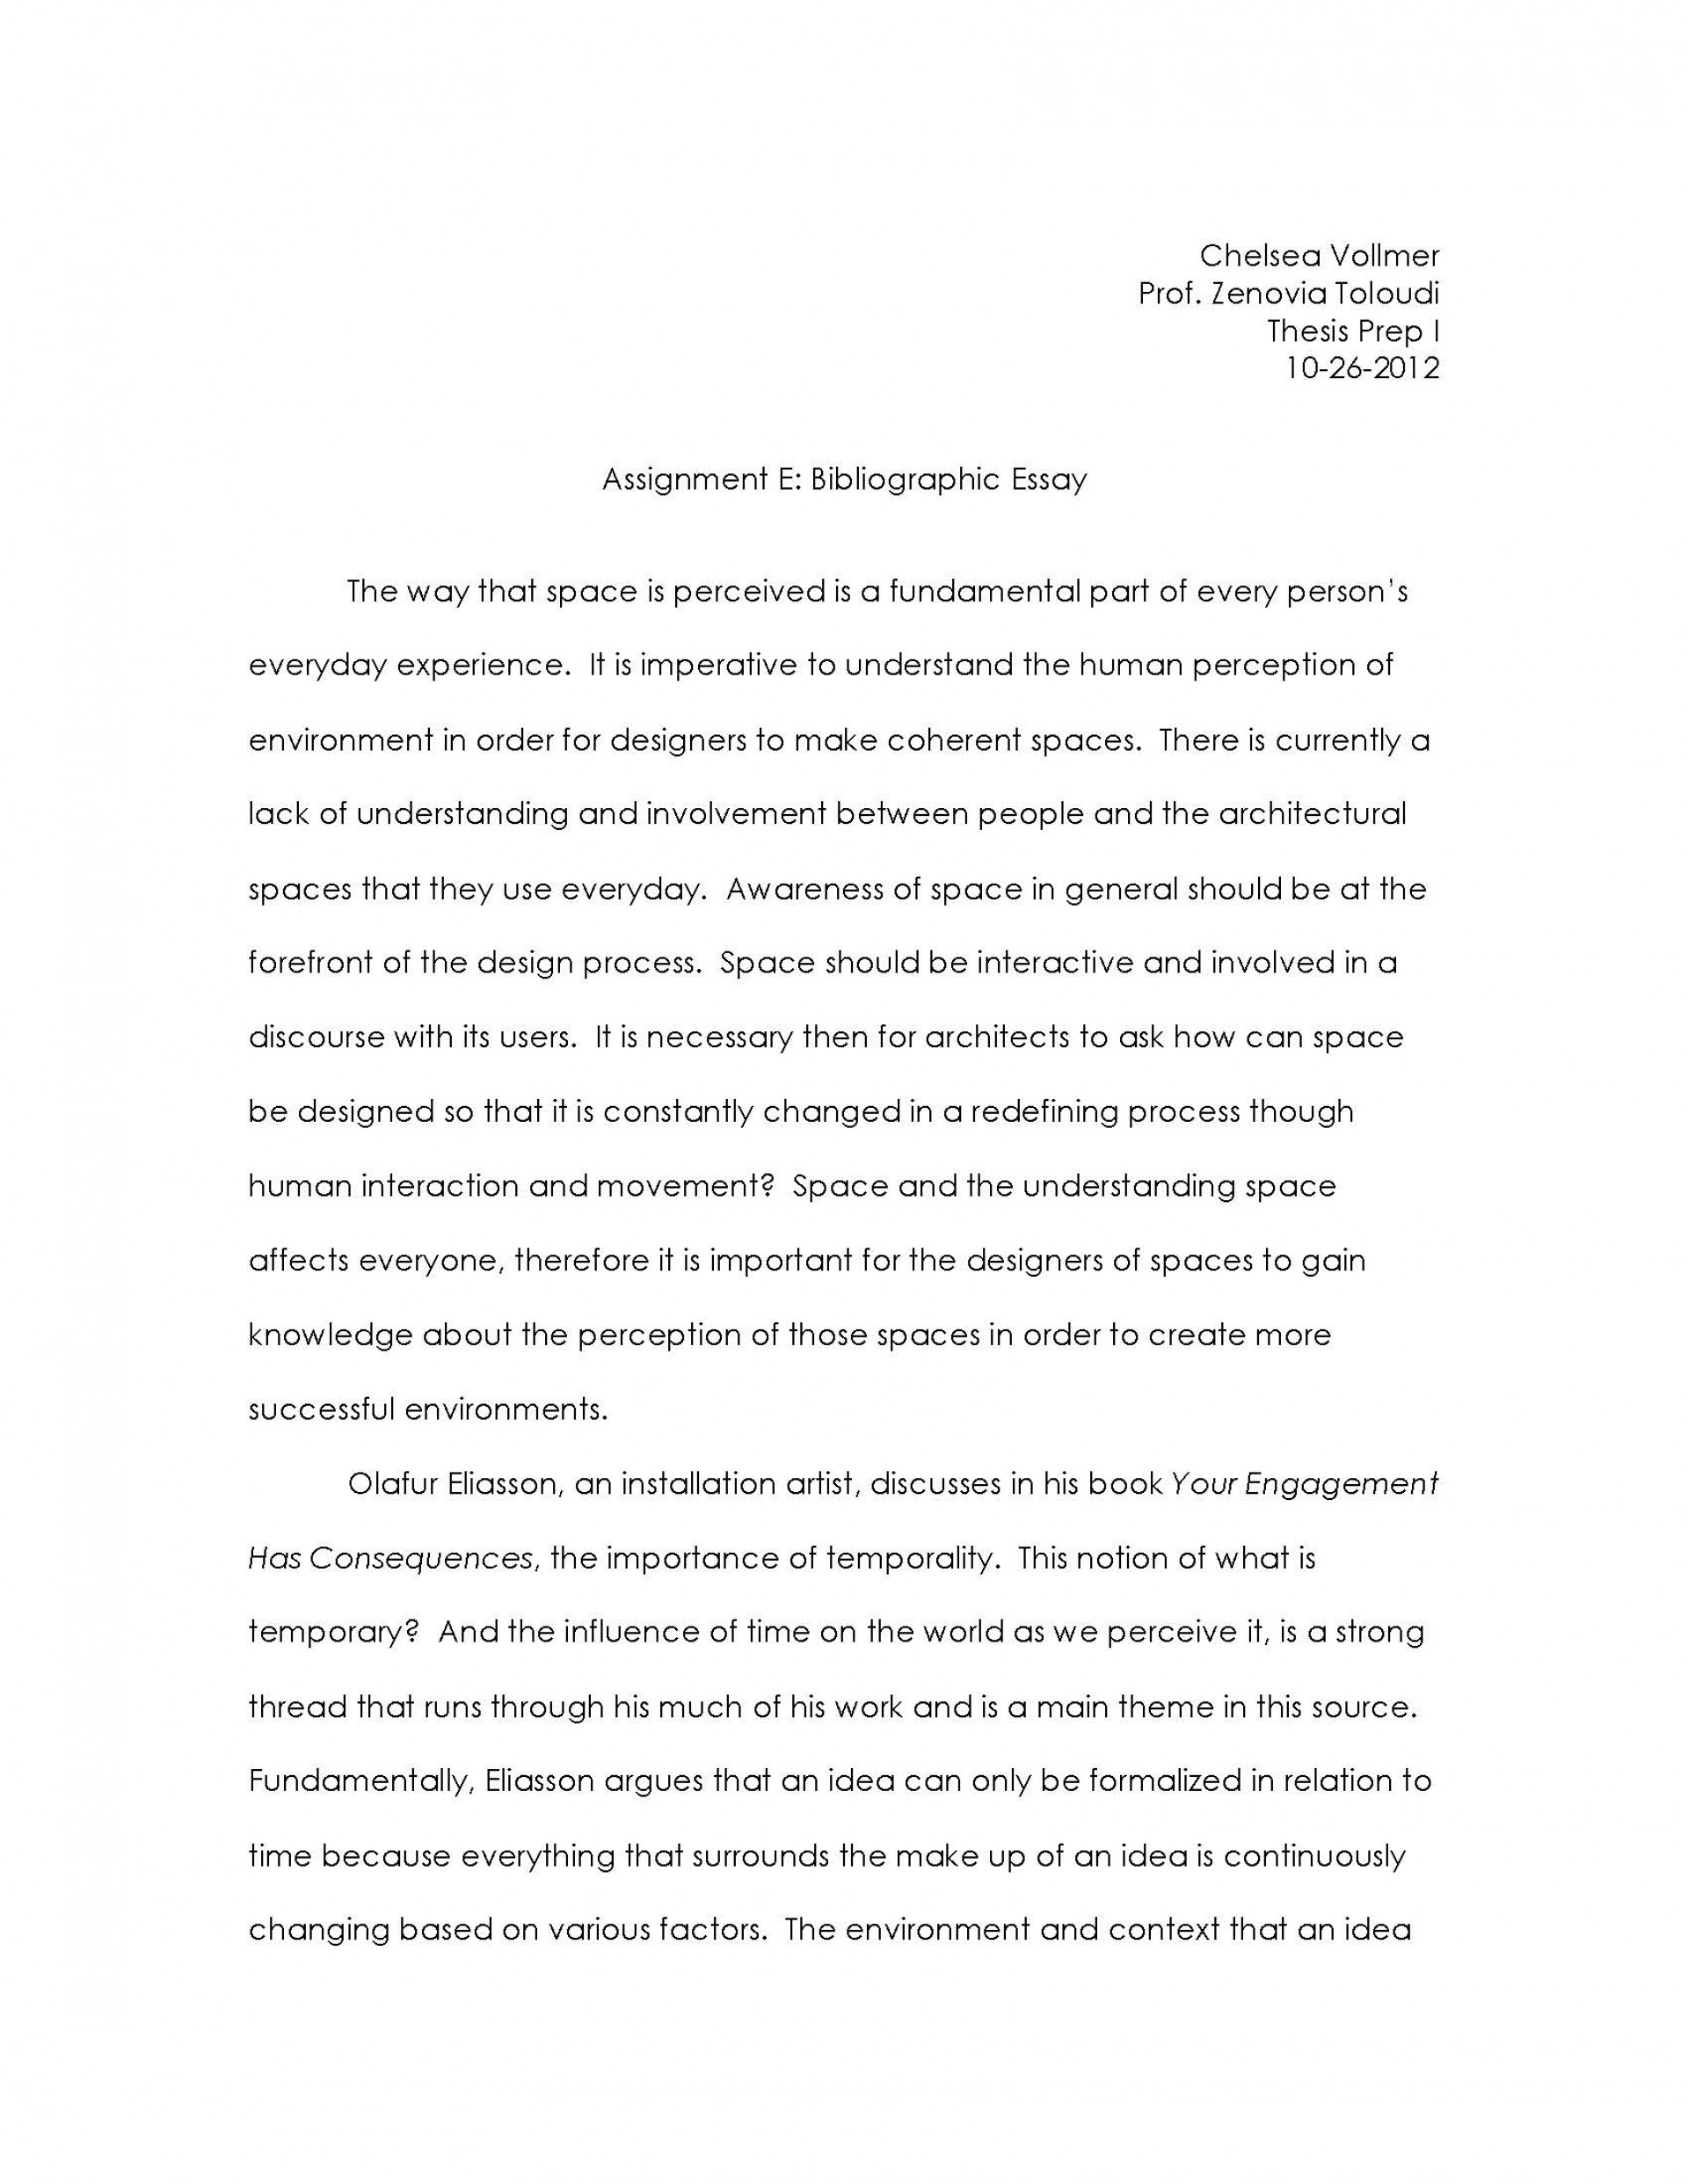 007 Assignment E Page 12 Satirical Essays Essay Exceptional Satire Examples On Social Media Issues 1920